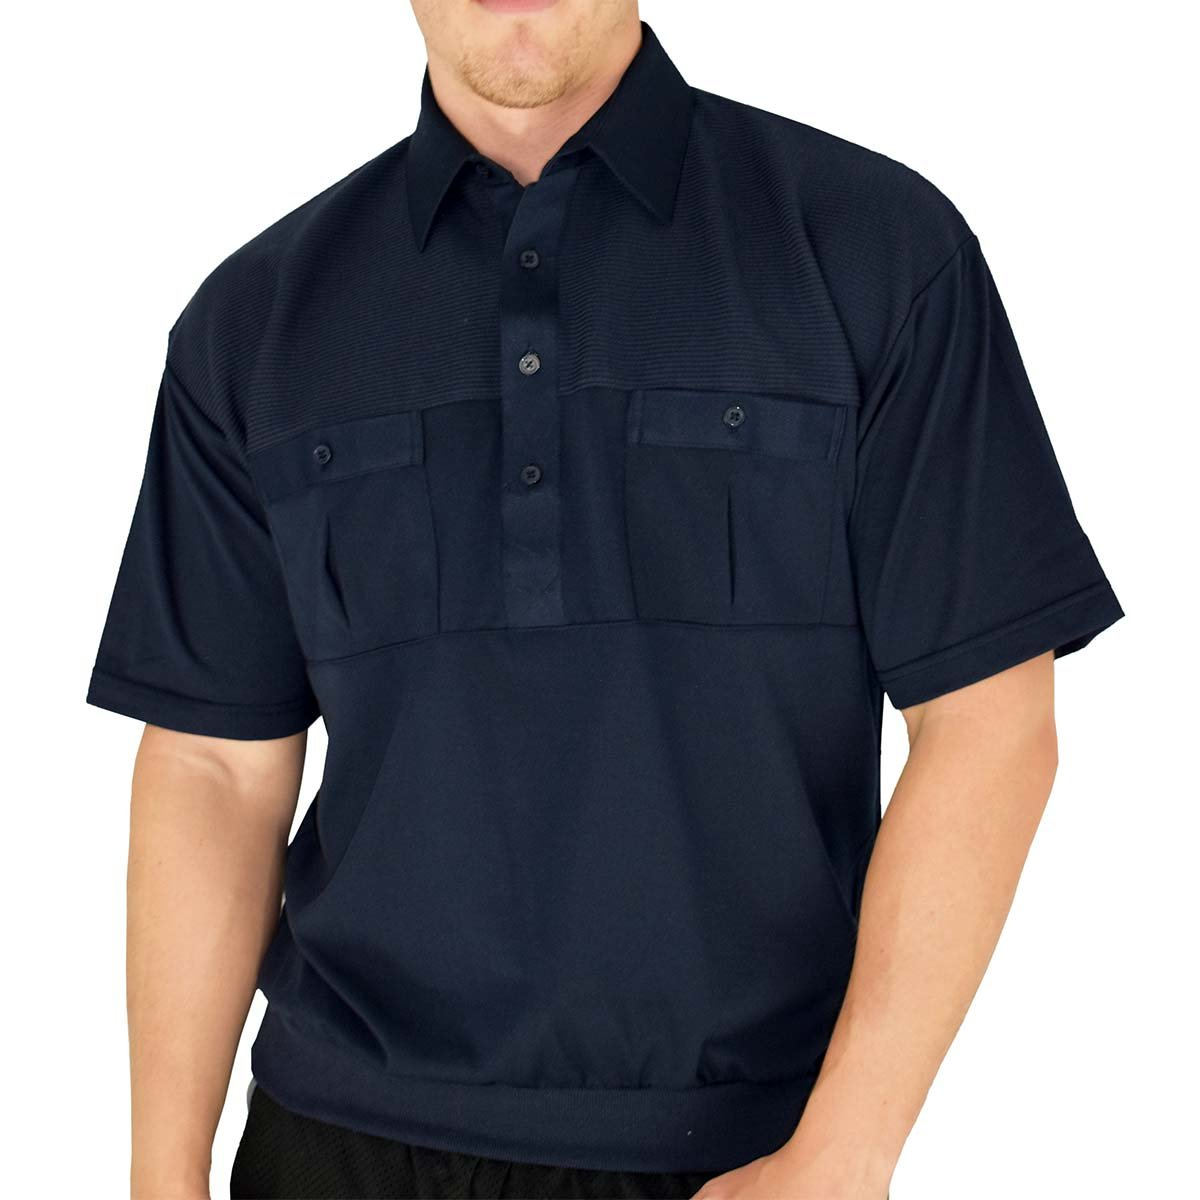 Palmland Classic 2 Pocket Solid Banded Bottom Polo Shirt At Amazon